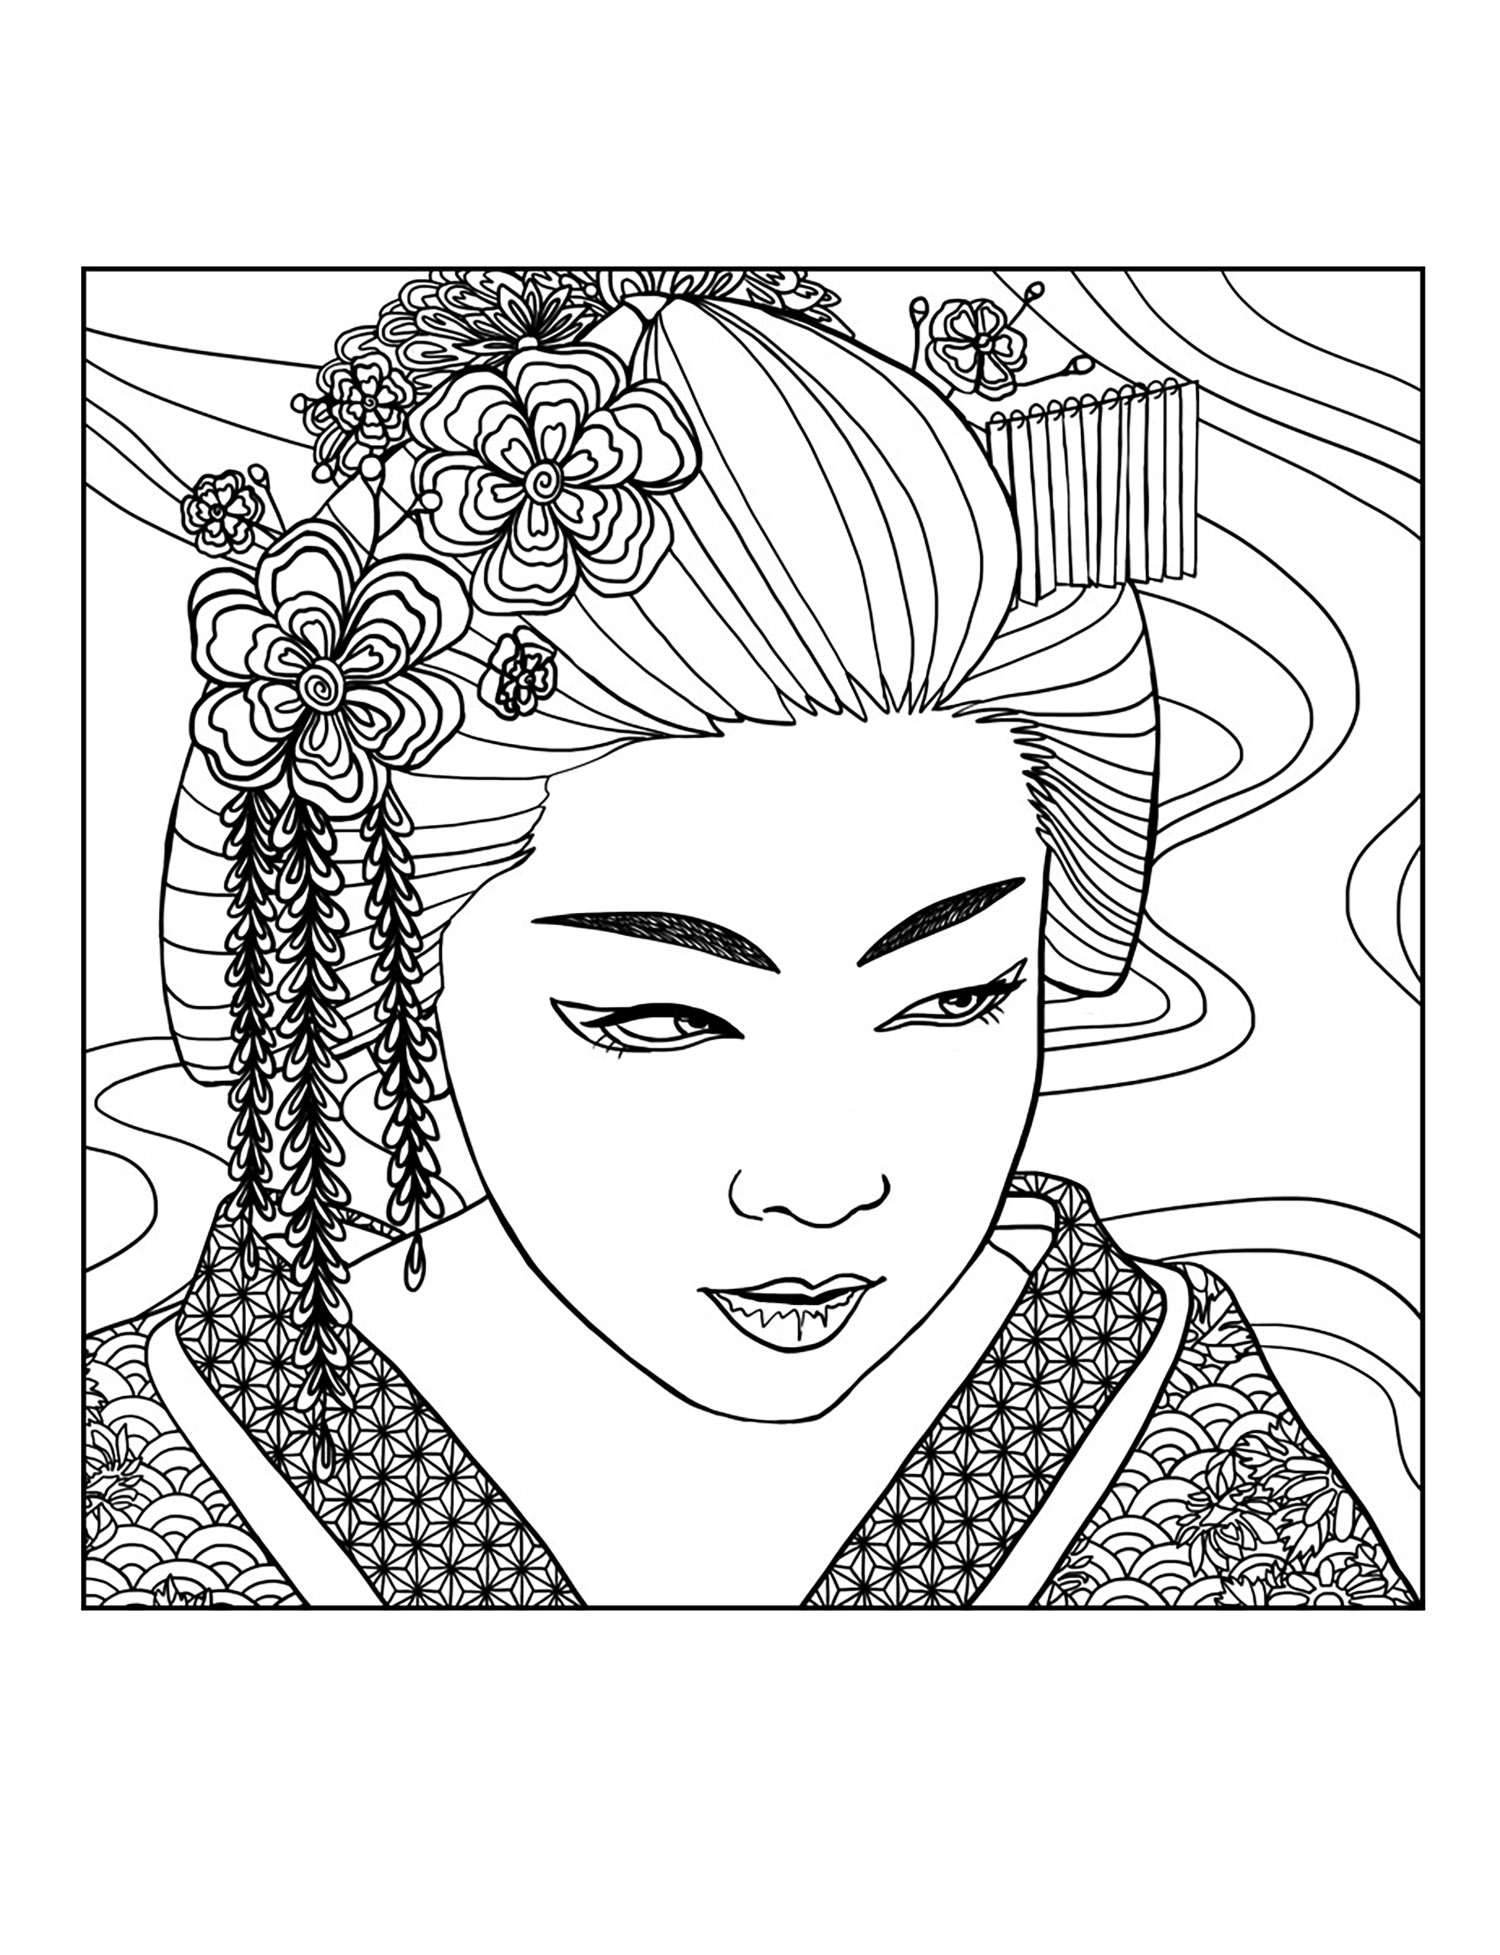 Coloring activities for seniors - Coloring Adult Geisha Face By Mizu Free To Print